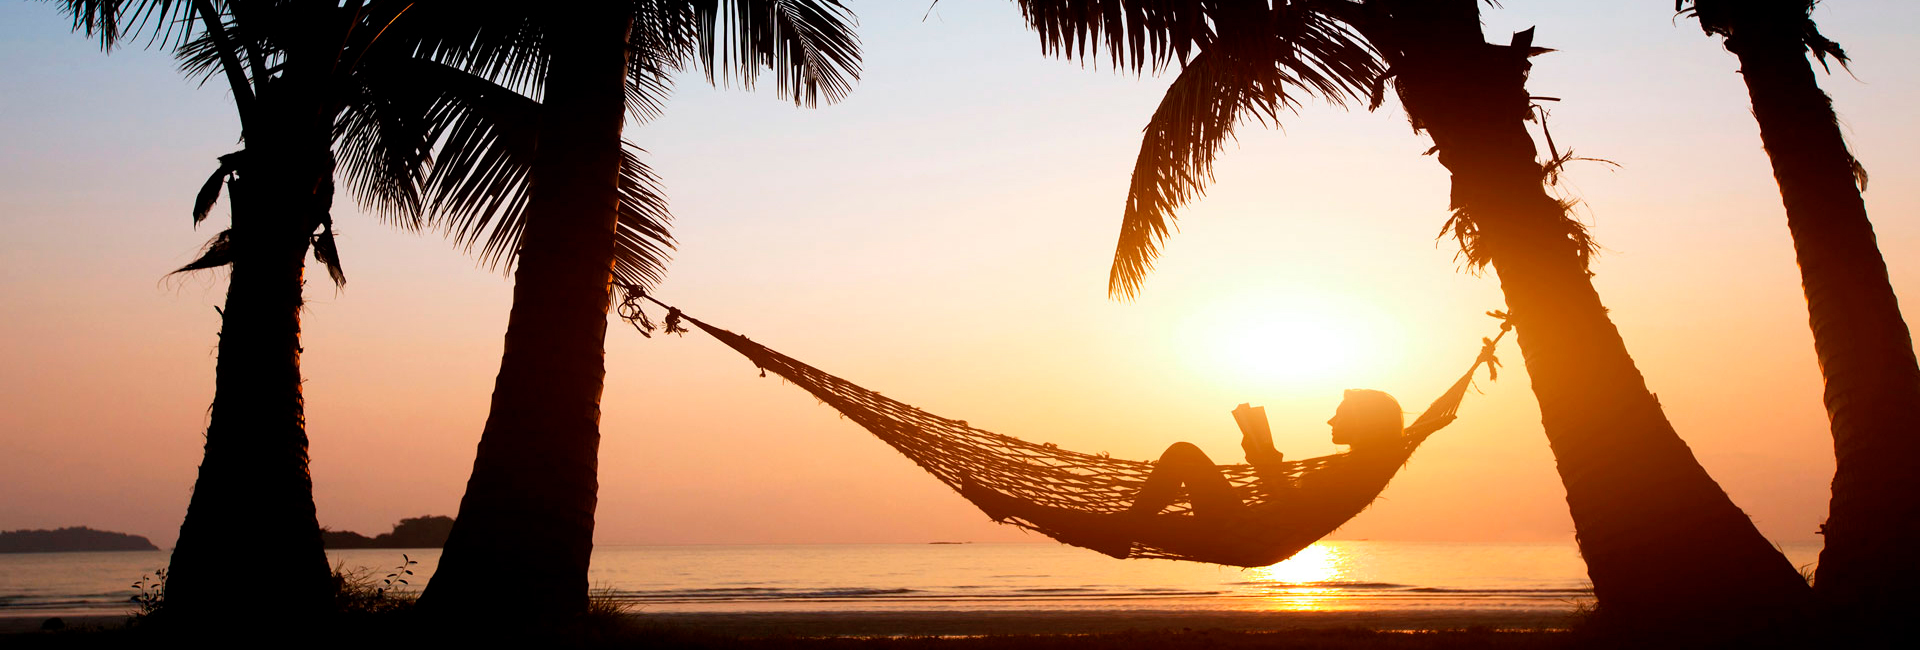 The benefits of a puerto vallarta vacation on the beach1920x650